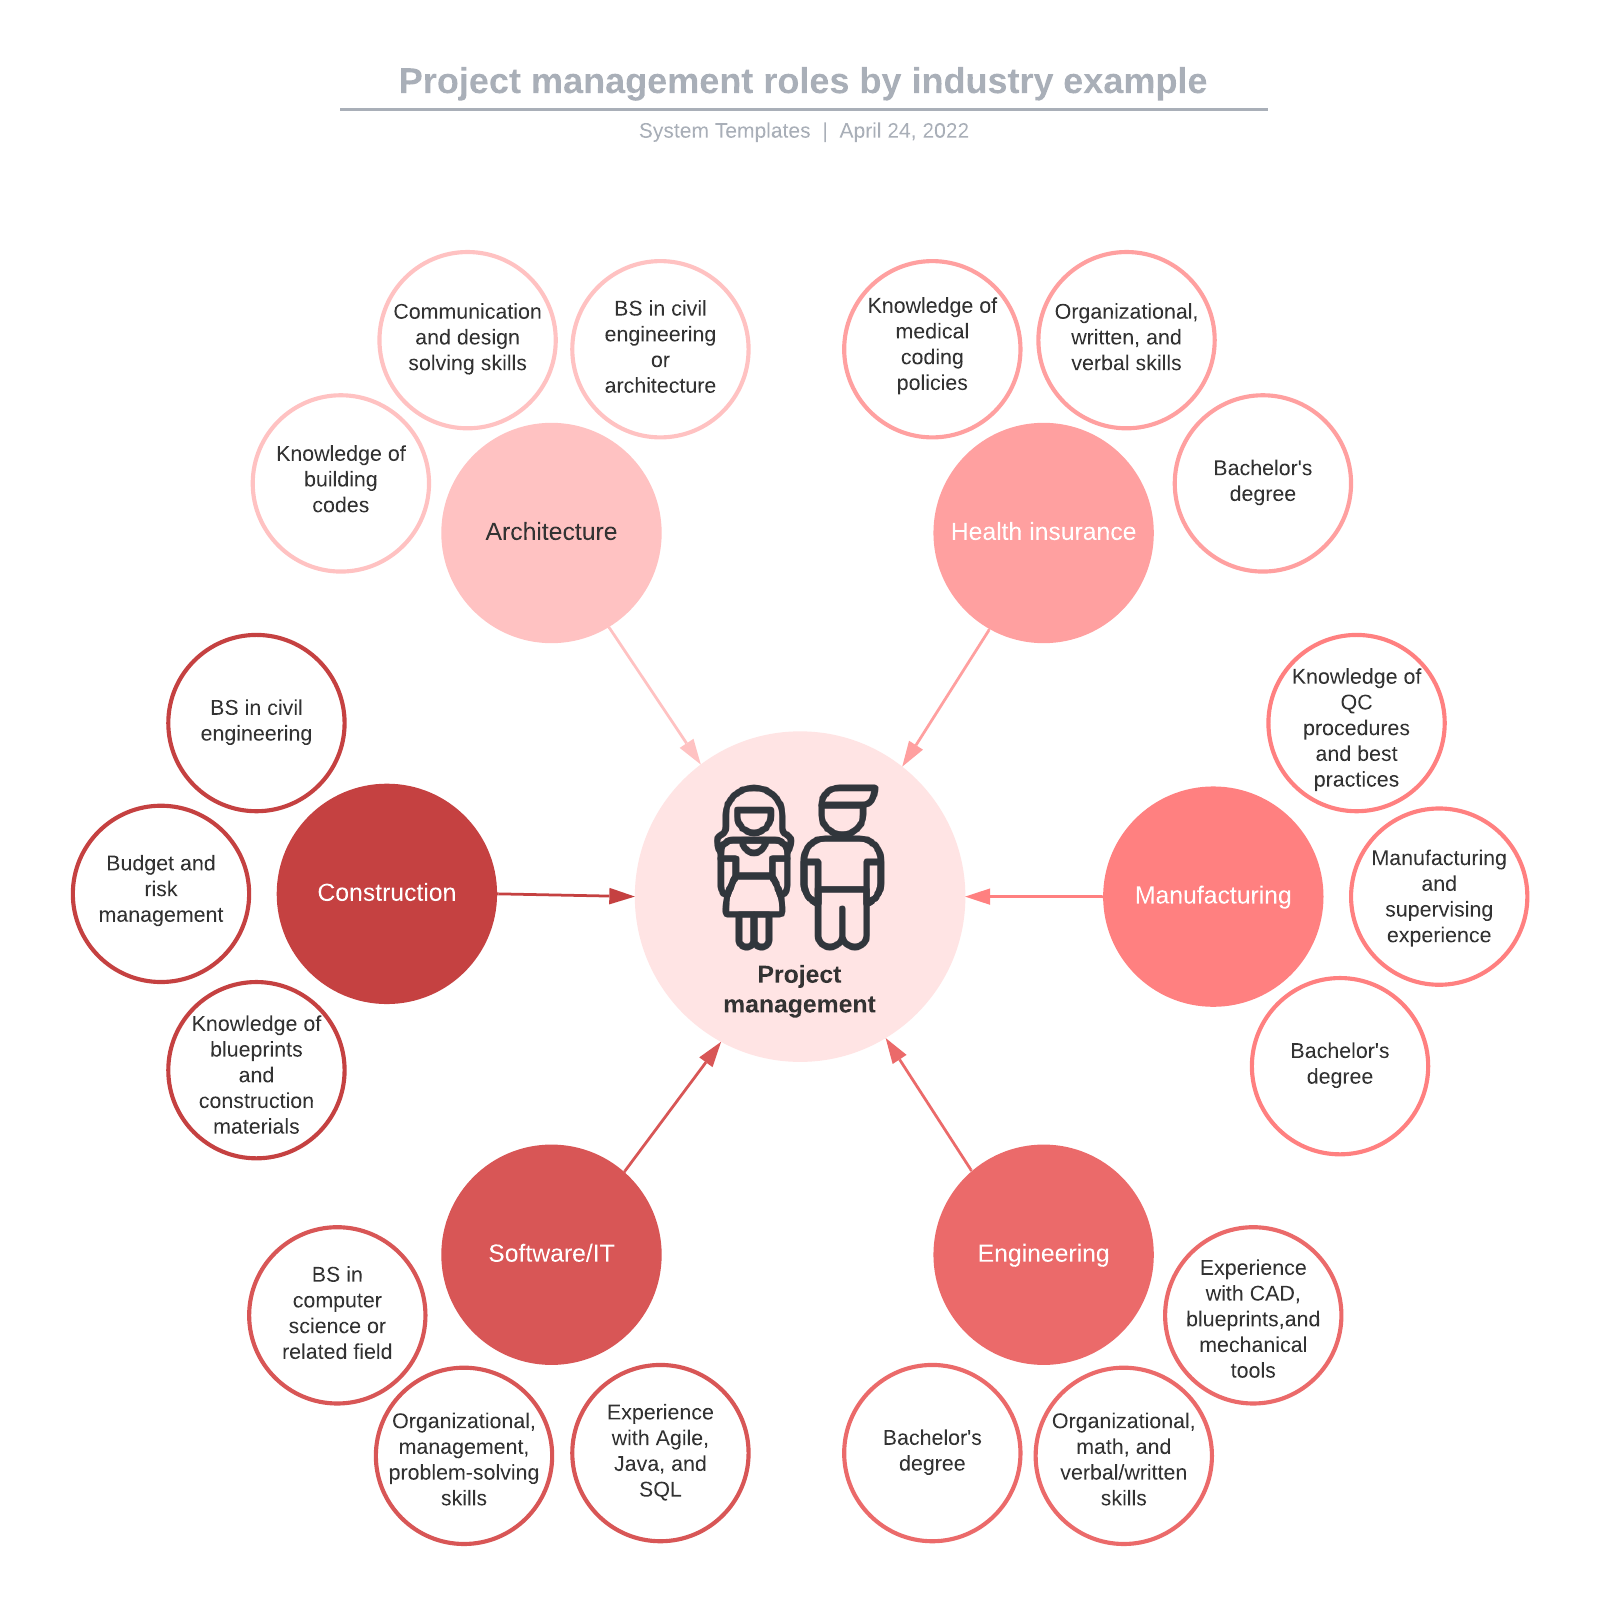 Project management roles by industry example